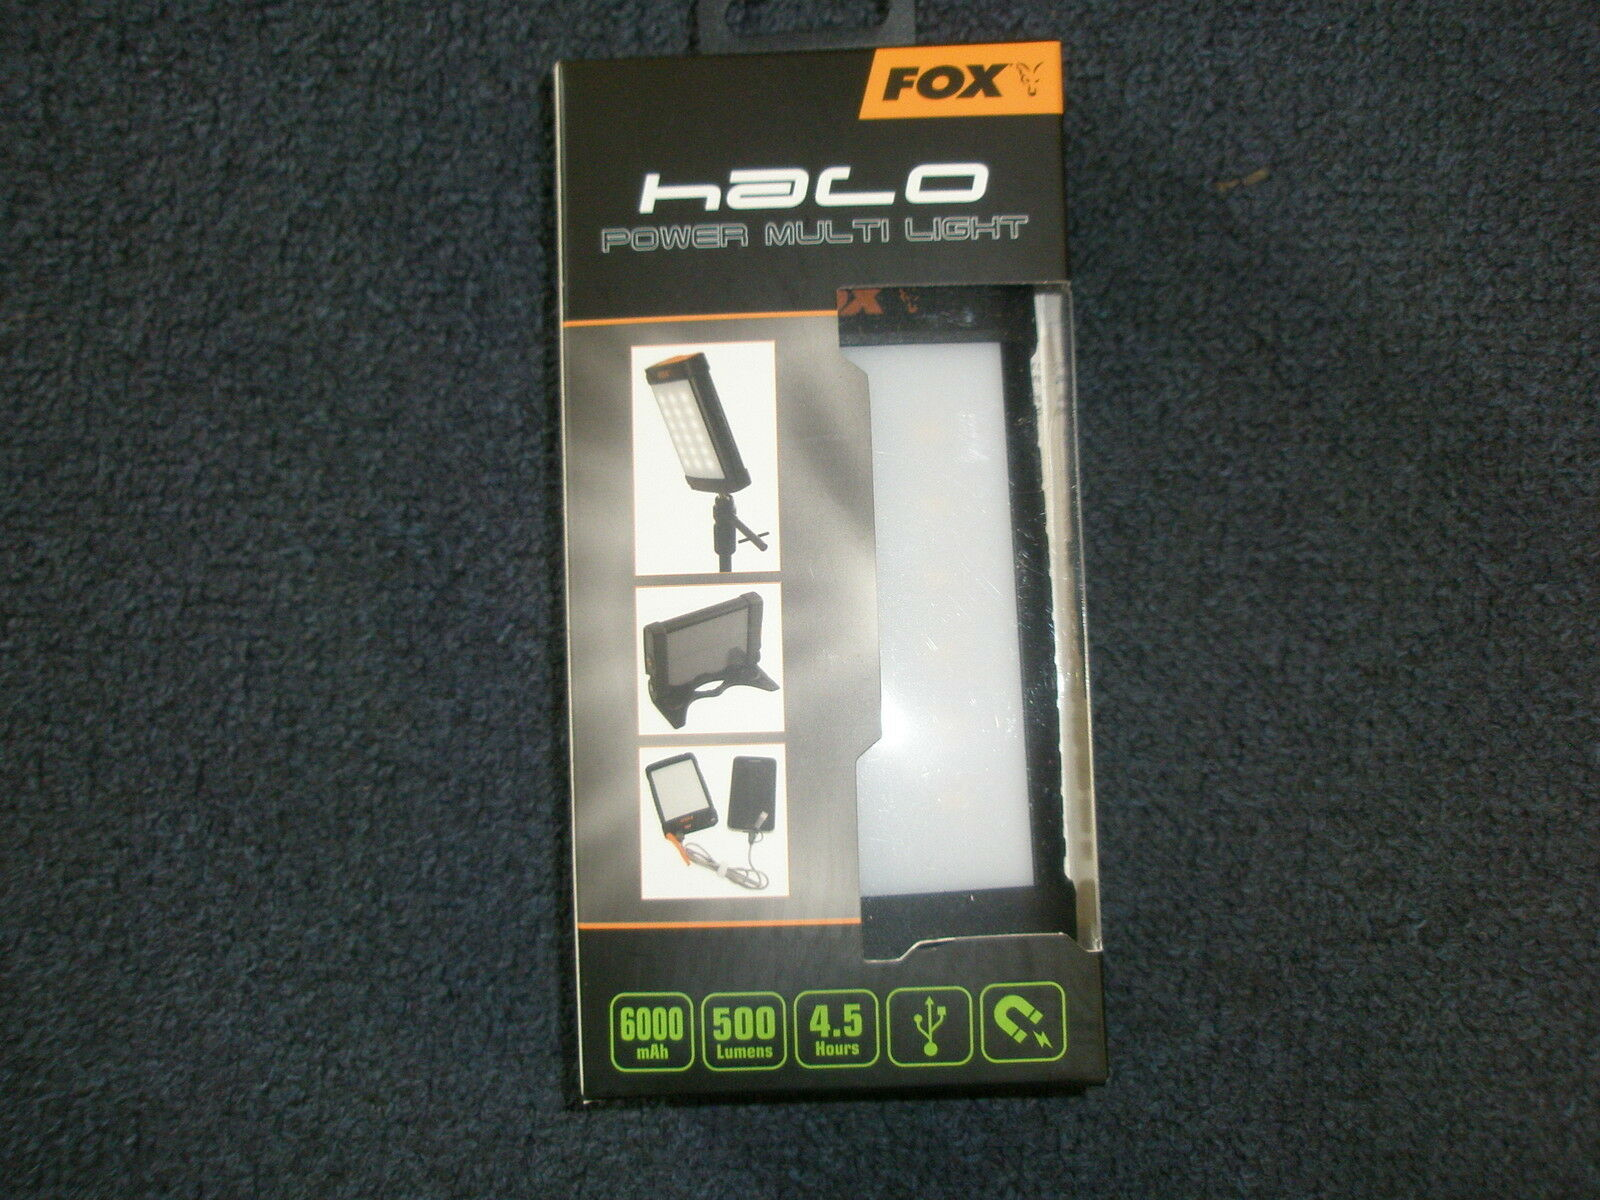 FOX Halo Power Attrezzatura Da Pesca Luce Multi